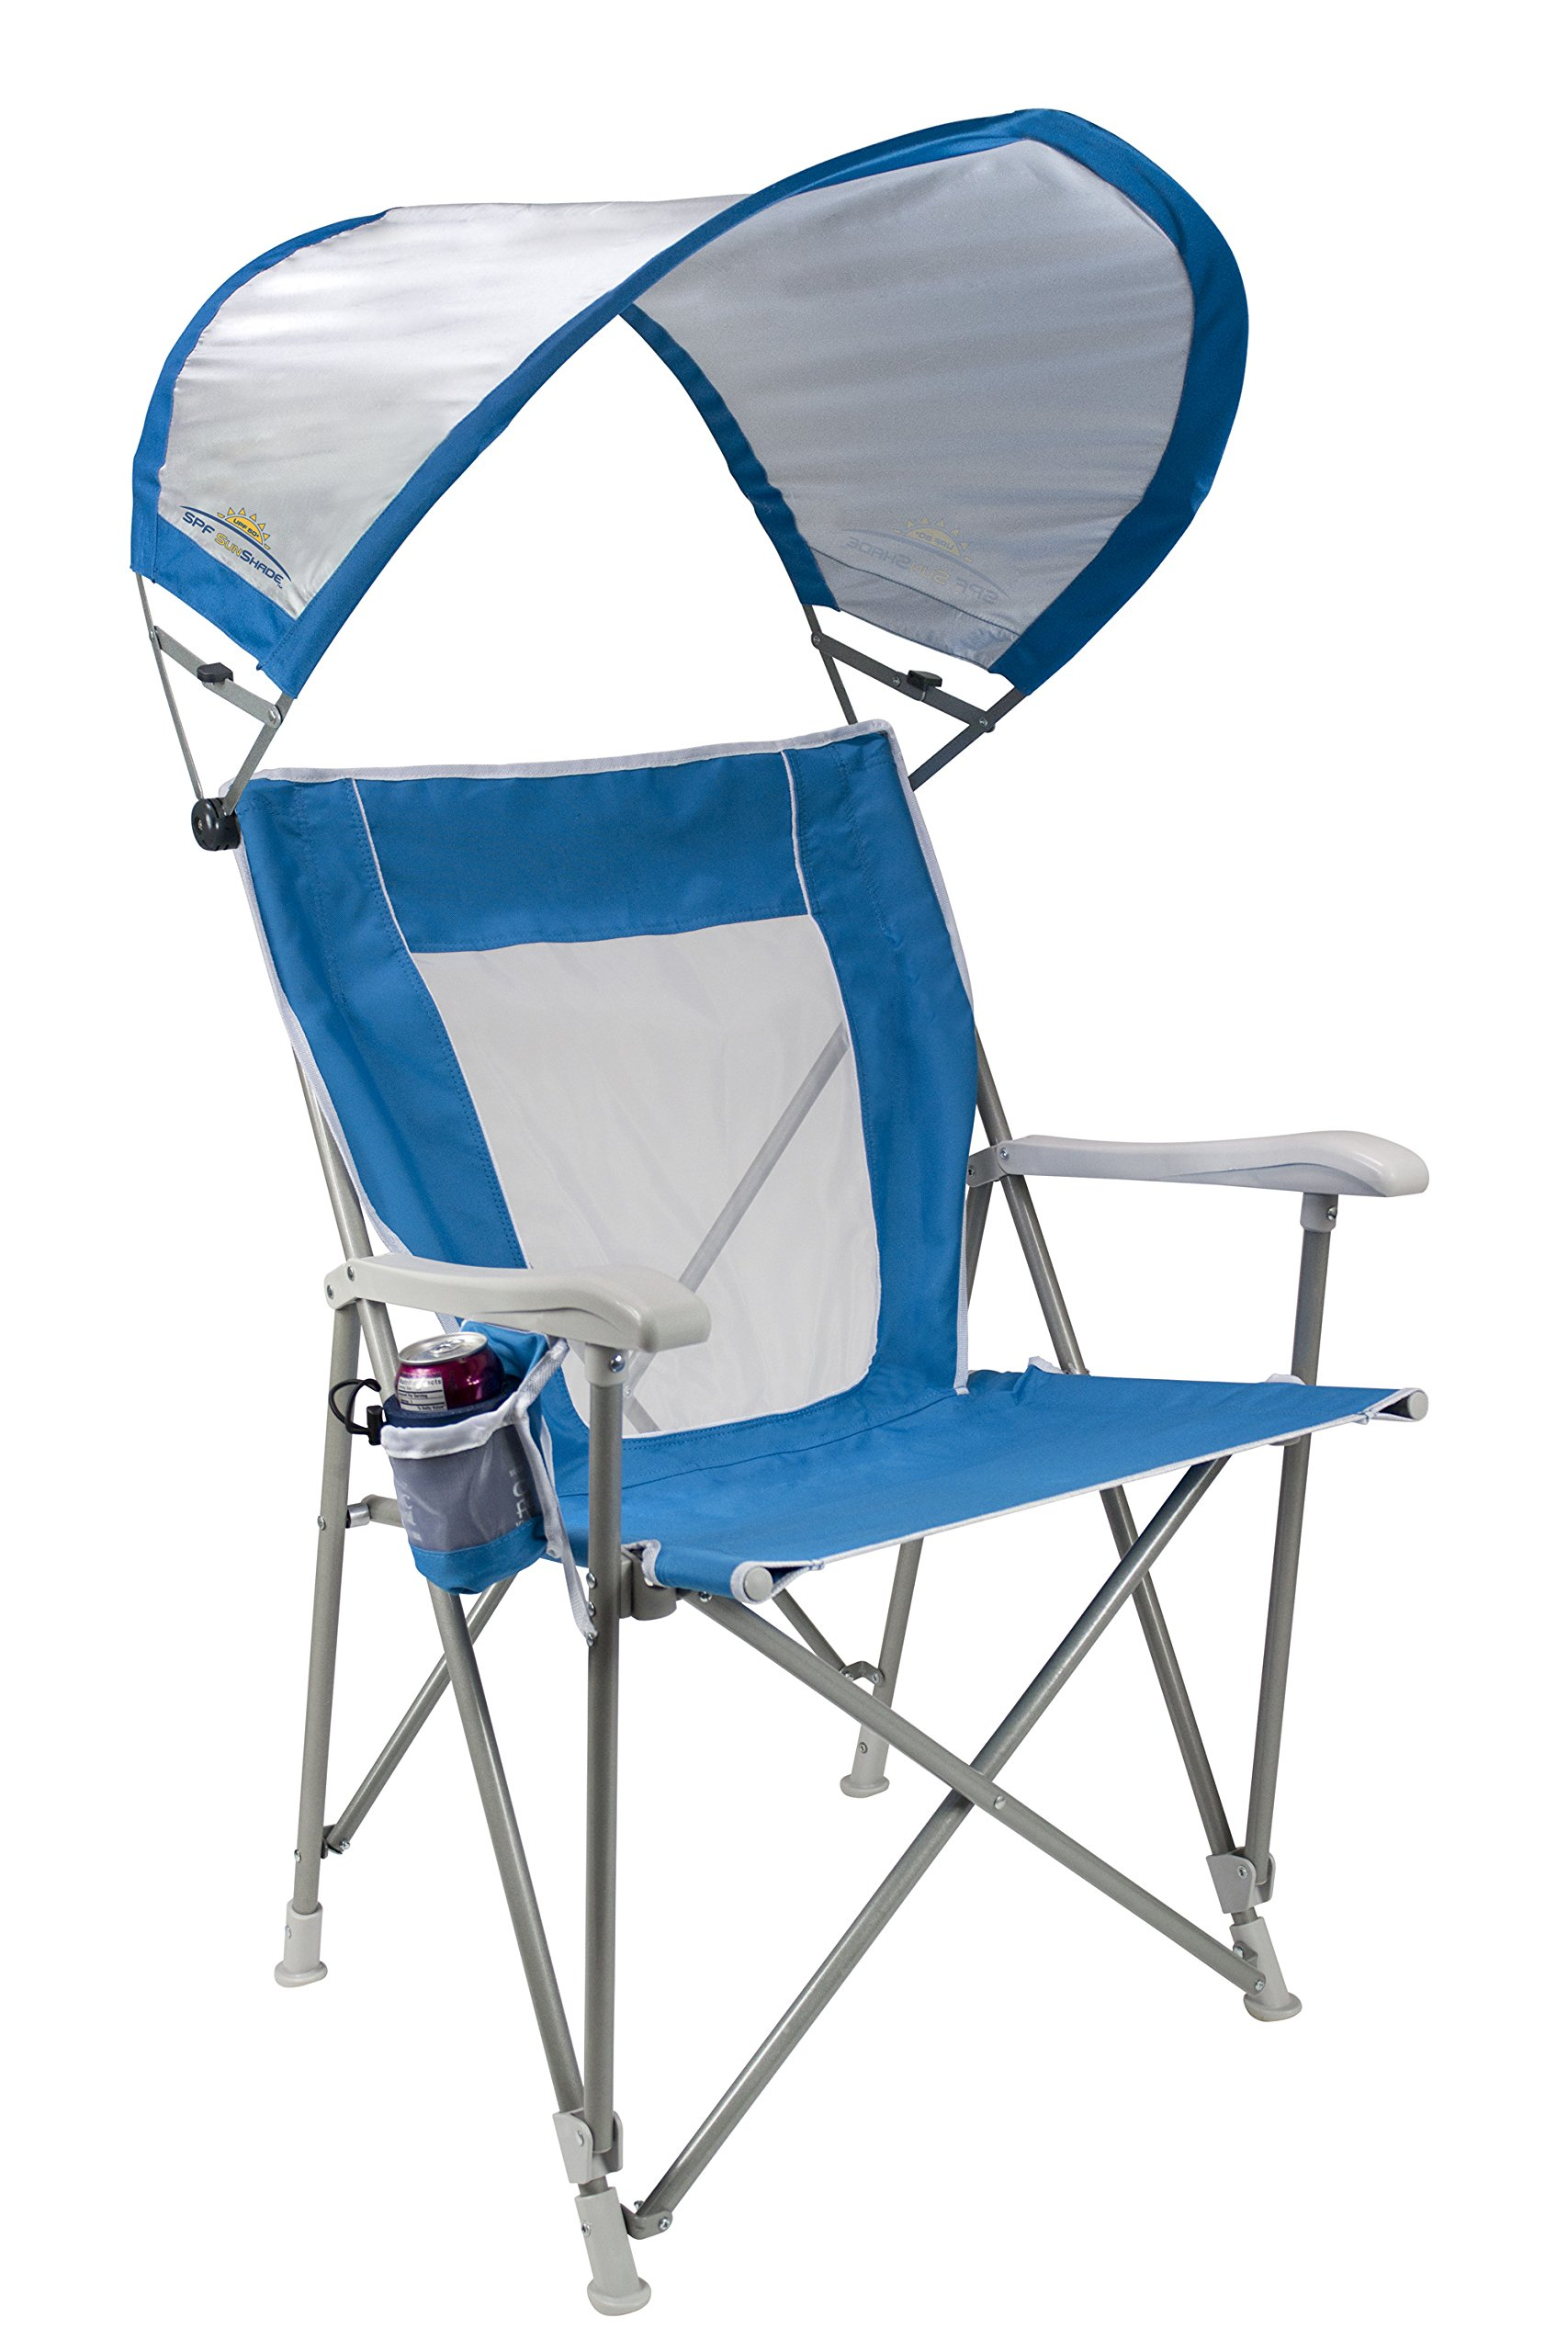 GCI Outdoor Waterside SunShade Folding Captain's Beach Chair with Adjustable SPF Canopy by GCI Outdoor